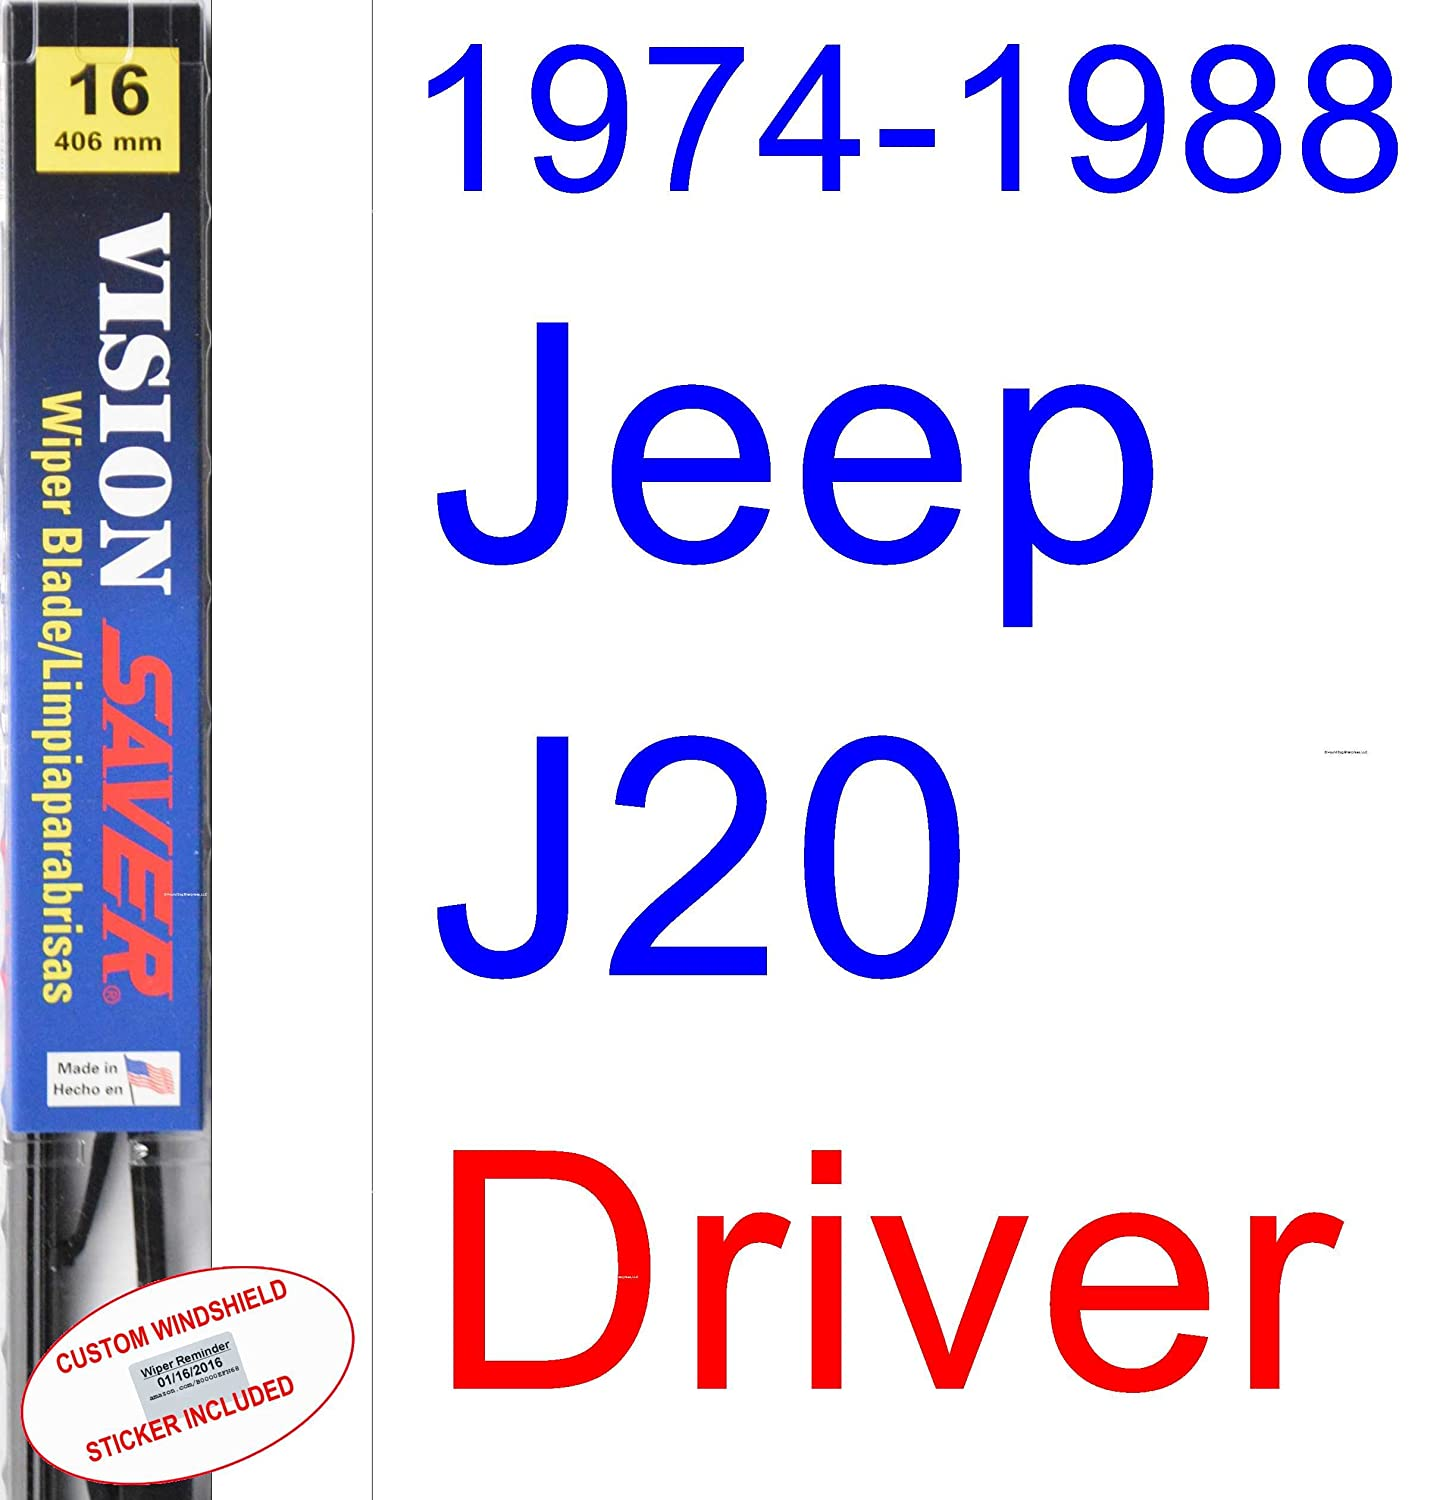 Amazon.com: 1974-1988 Jeep J20 Wiper Blade (Driver) (Saver Automotive Products-Vision Saver) (1975,1976,1977,1978,1979,1980,1981,1982,1983,1984,1985,1986 ...